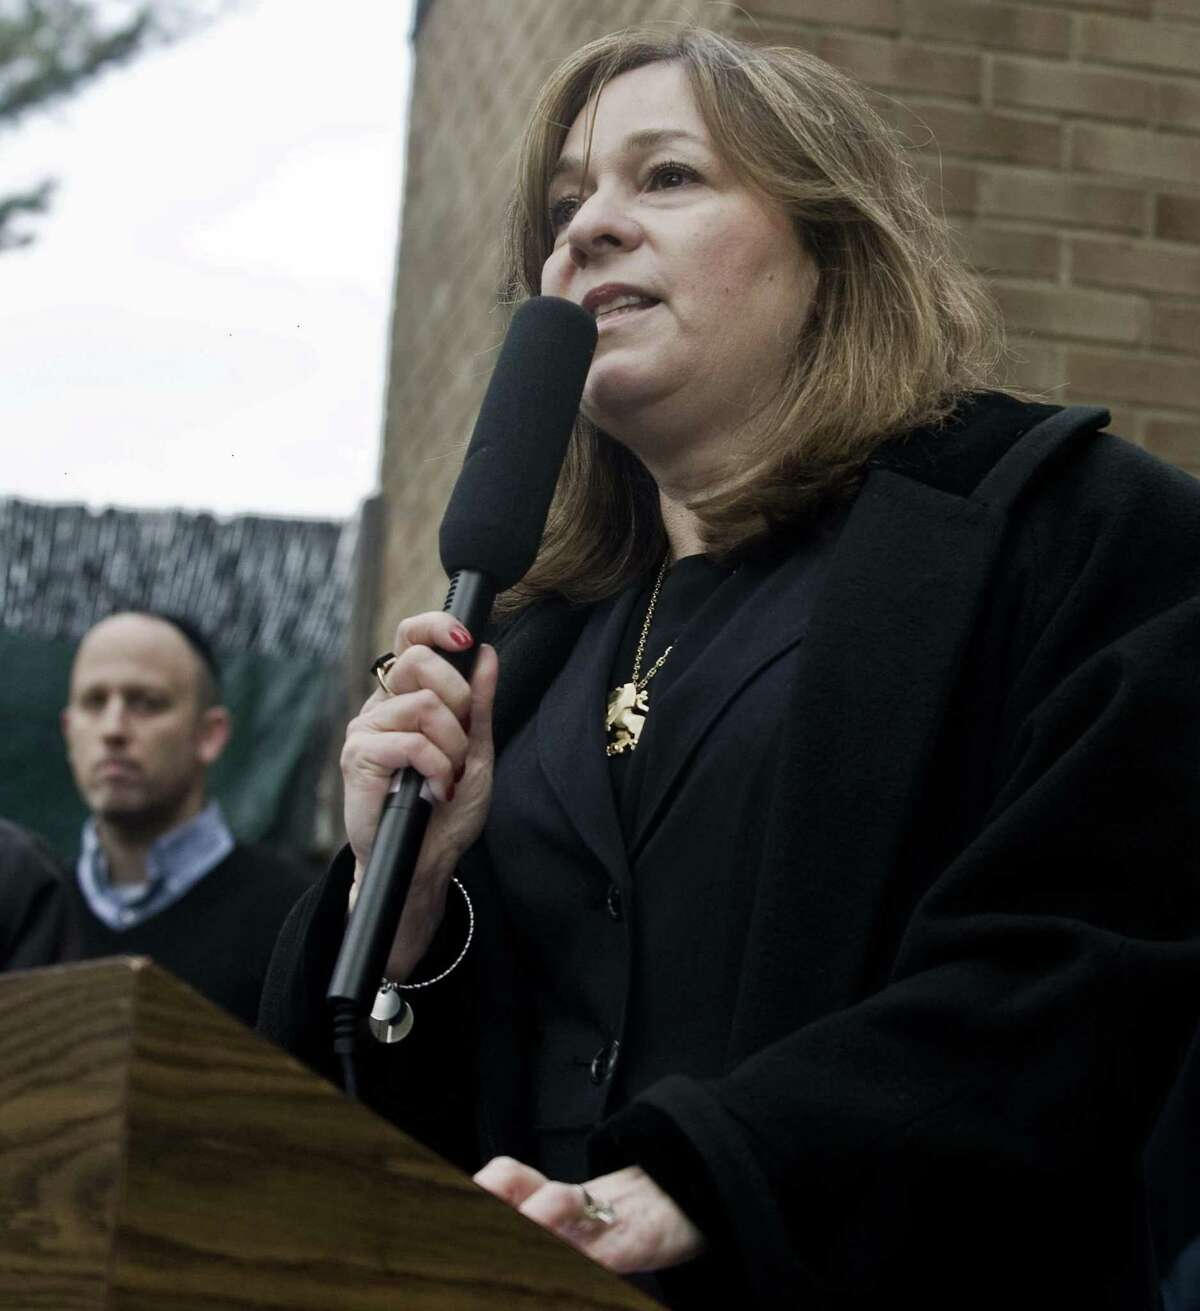 Pam Ehrenkranz, CEO of UJA-JCC of Greenwich, speaks to the gathering during a vigil at Agudath Sholom in Stamford, for the loss of life at the Tree of Life synagogue in Pittsburgh. Sunday, Oct. 28, 2018